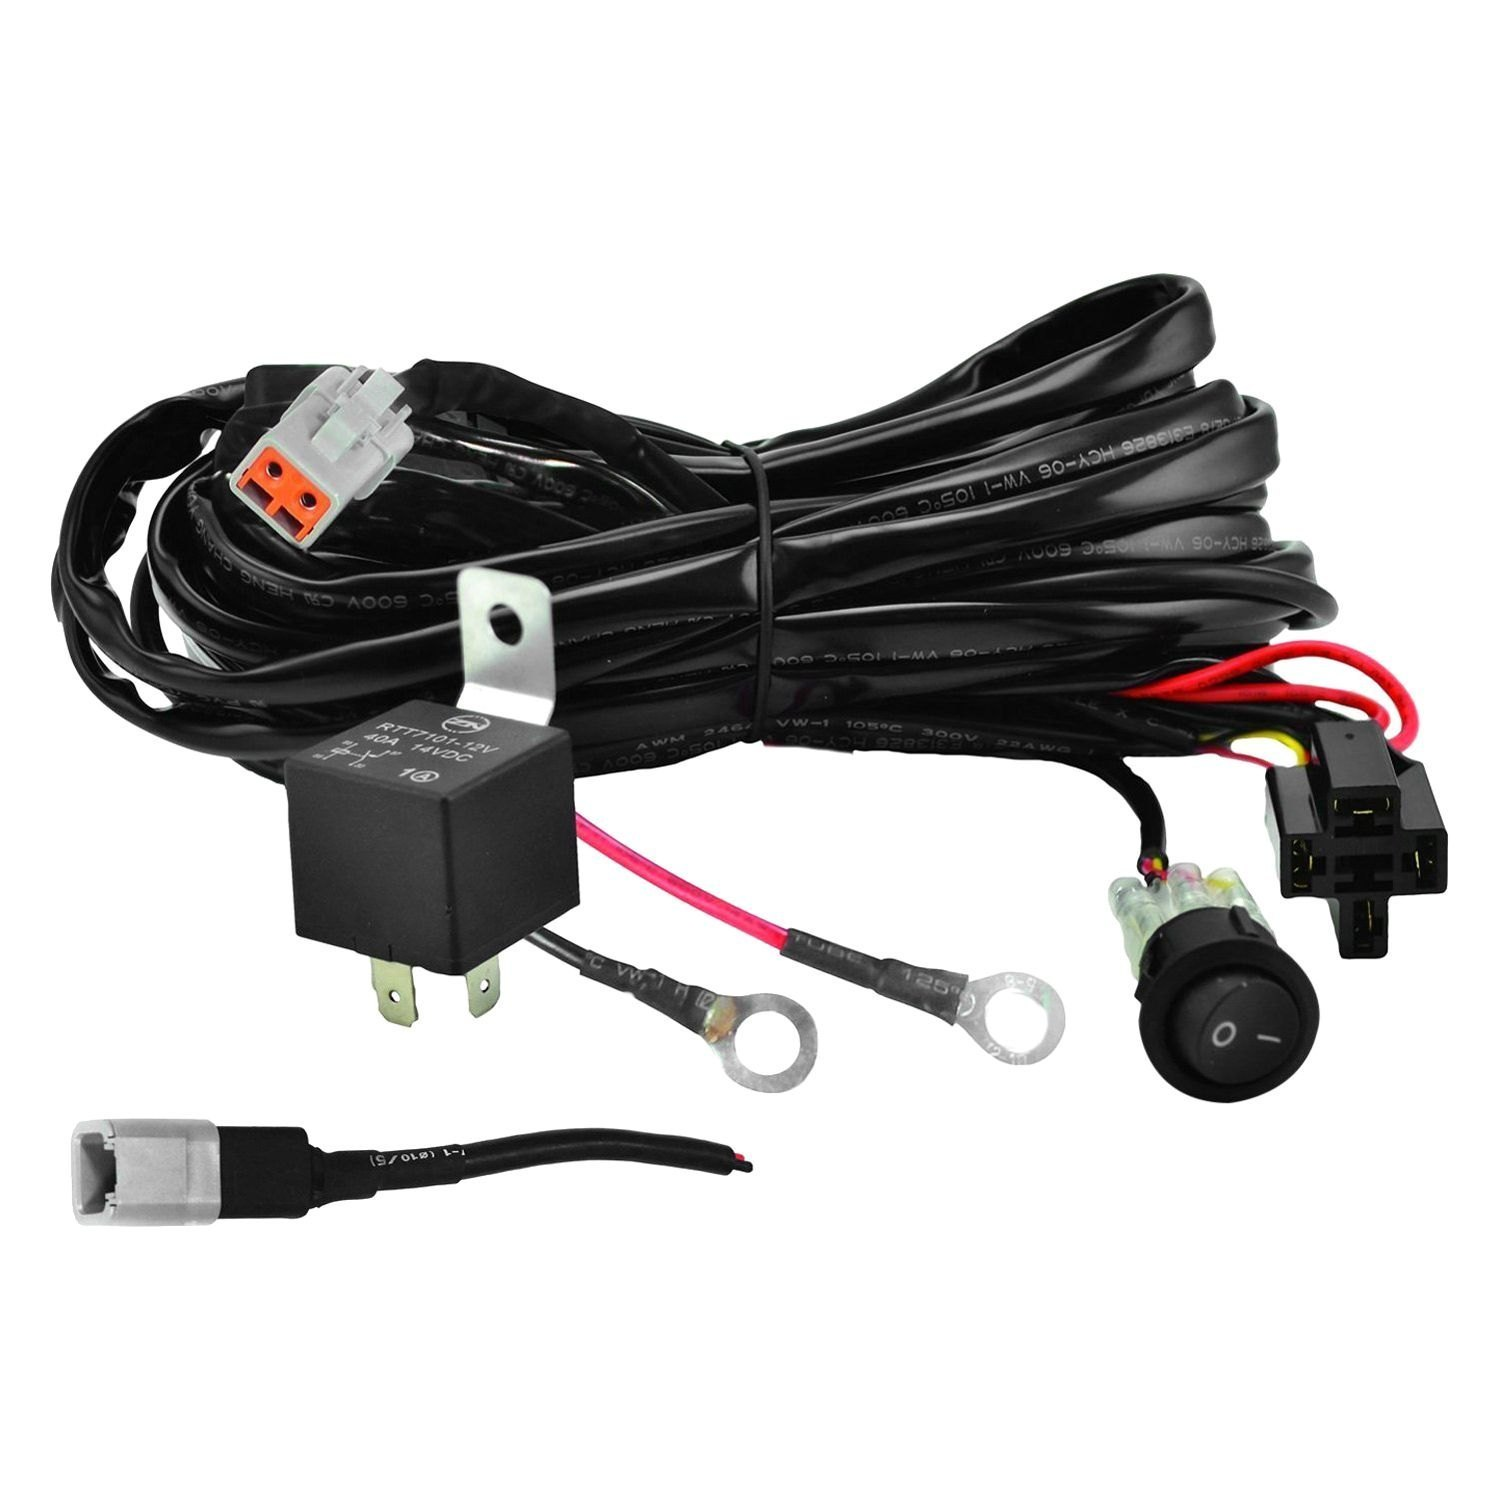 Hella Wiring Harness For Valuefit Series Product 1 Lamp